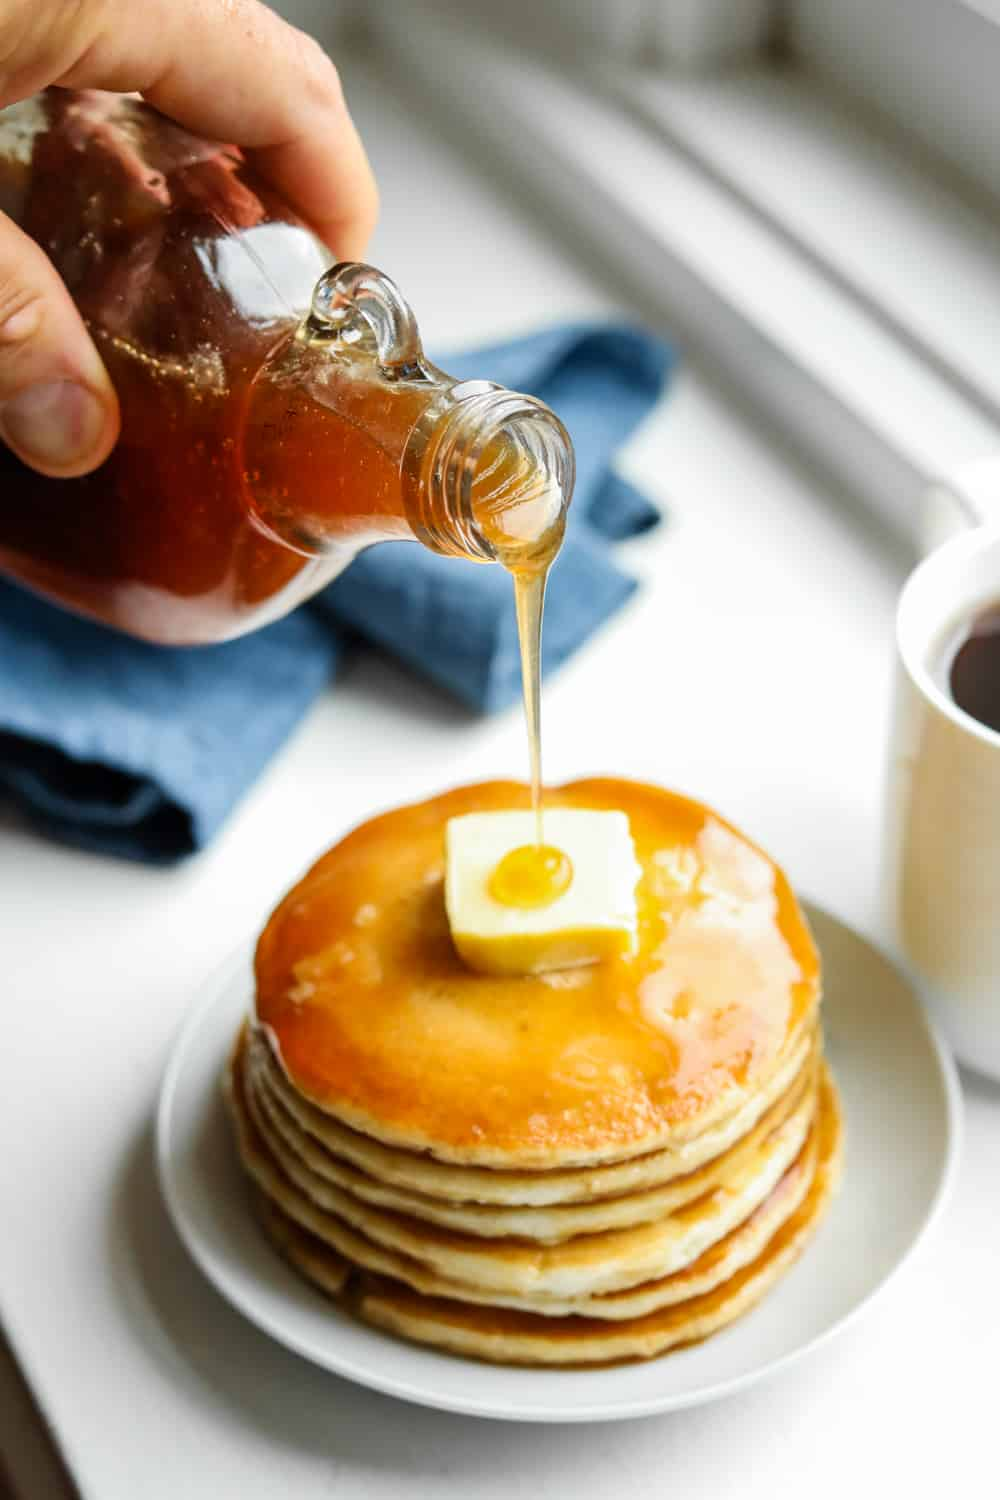 Maple syrup being poured on pancakes.